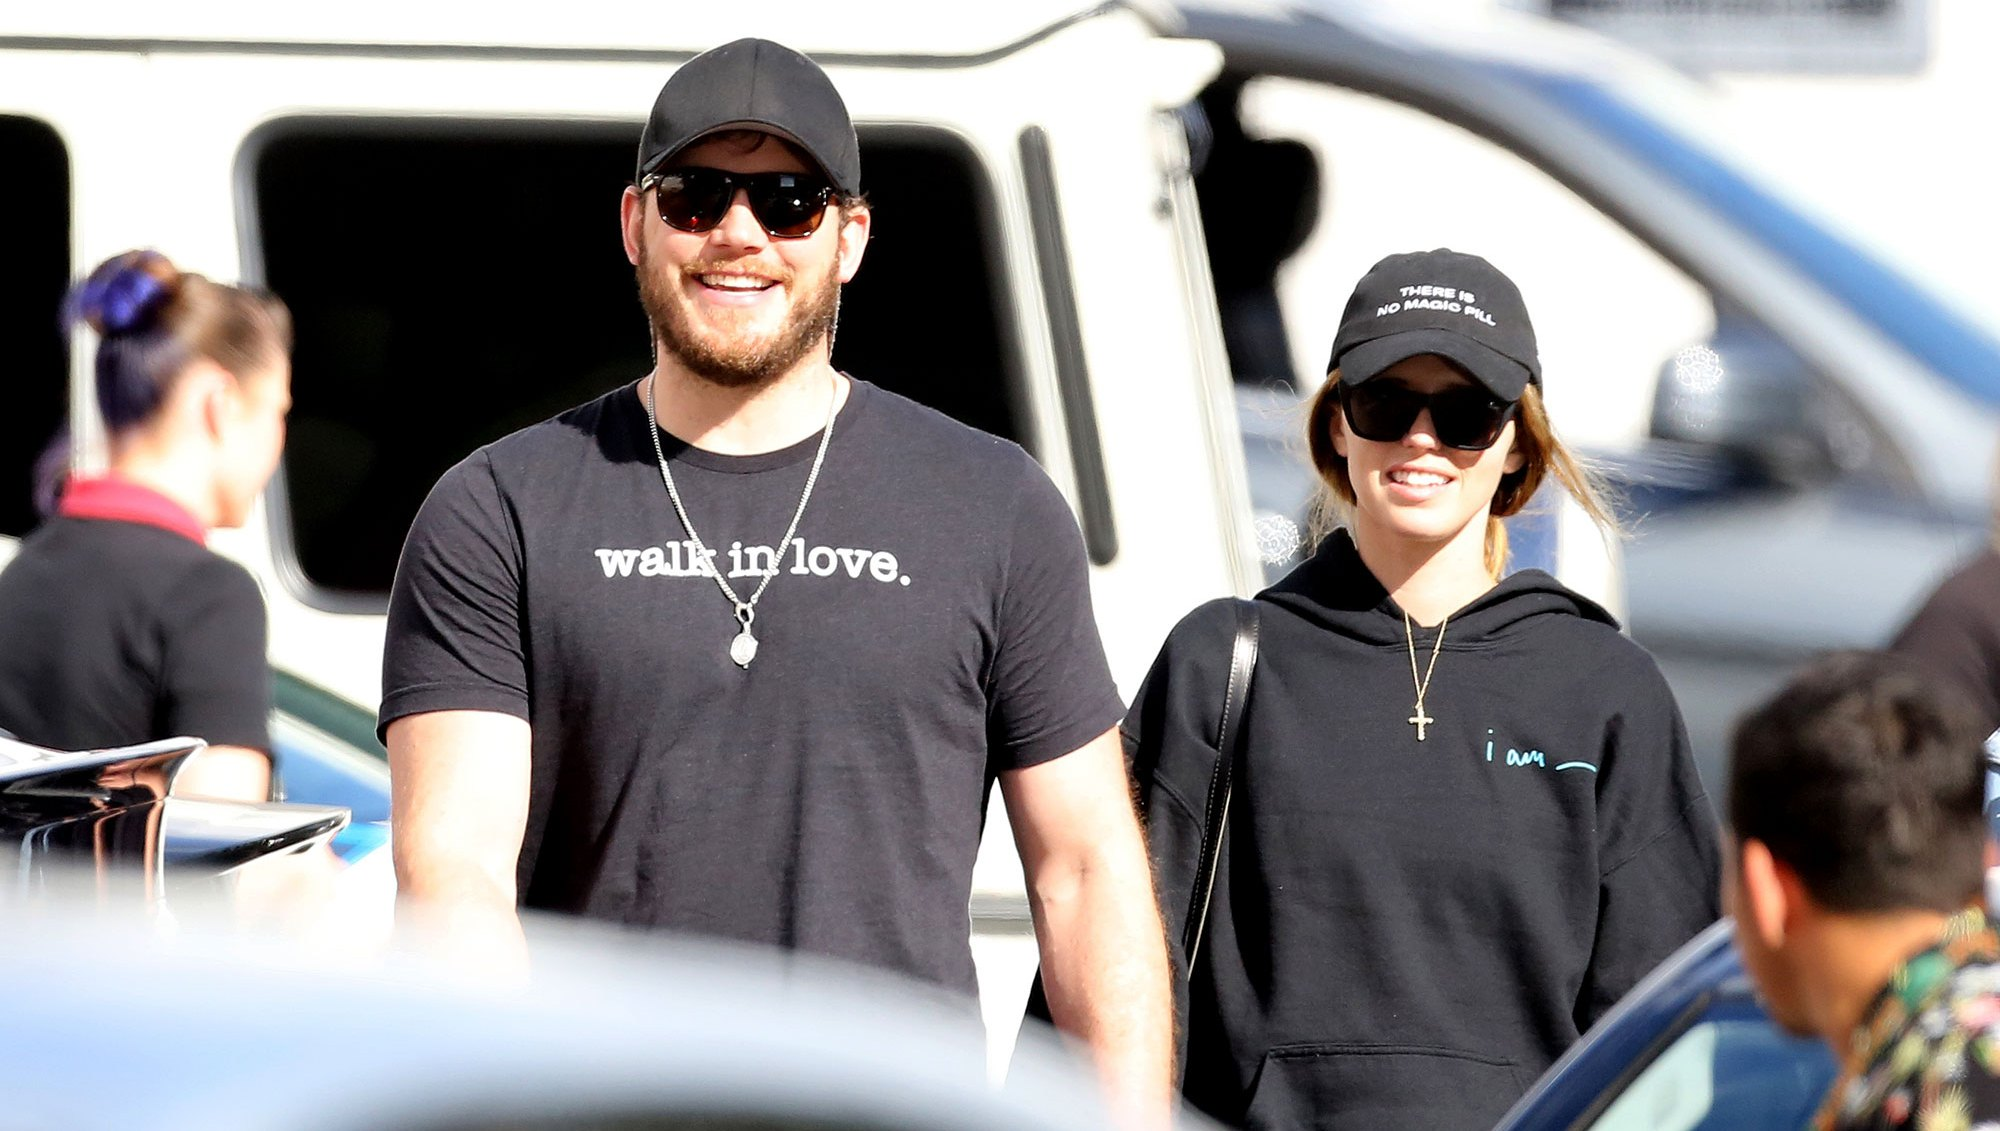 Chris Pratt and Katherine Schwarzenegger Chris Pratt Hilariously Trolls Himself on Fiancee Katherine's IG